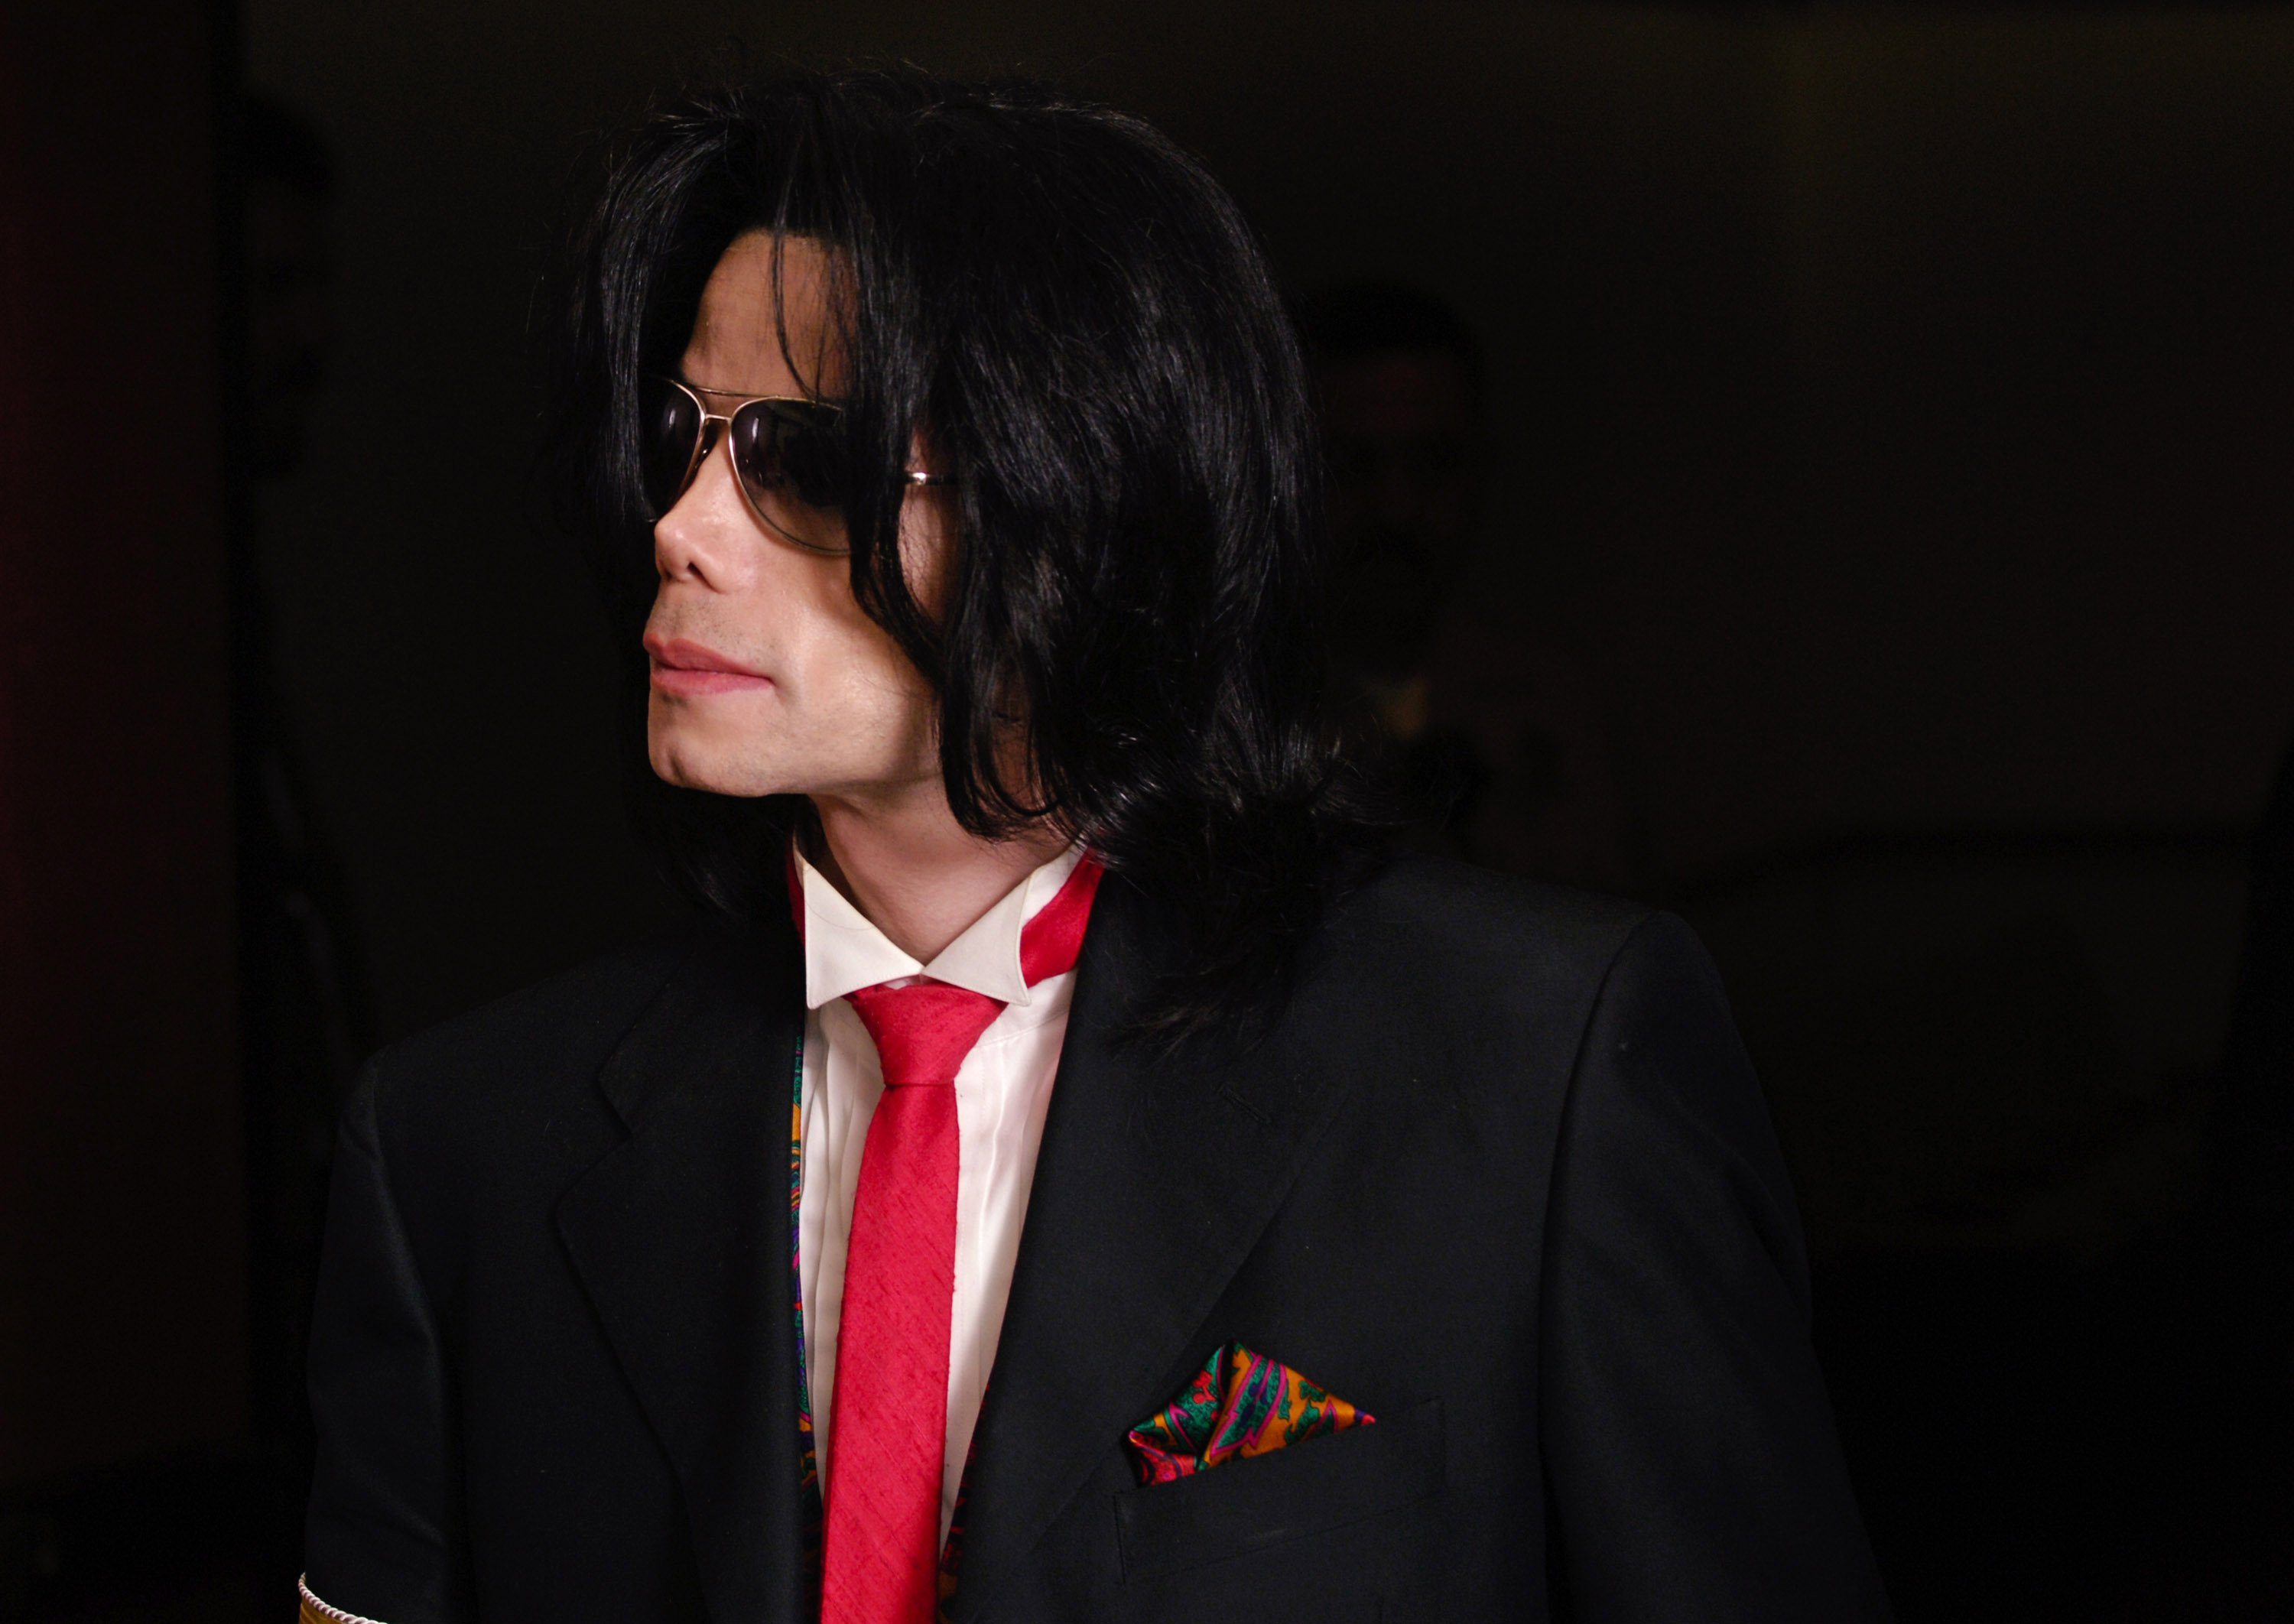 Michael Jackson leaves the courtroom following his trial in the Santa Barbara County Courthouse May 27, 2005. | Source: Getty Images